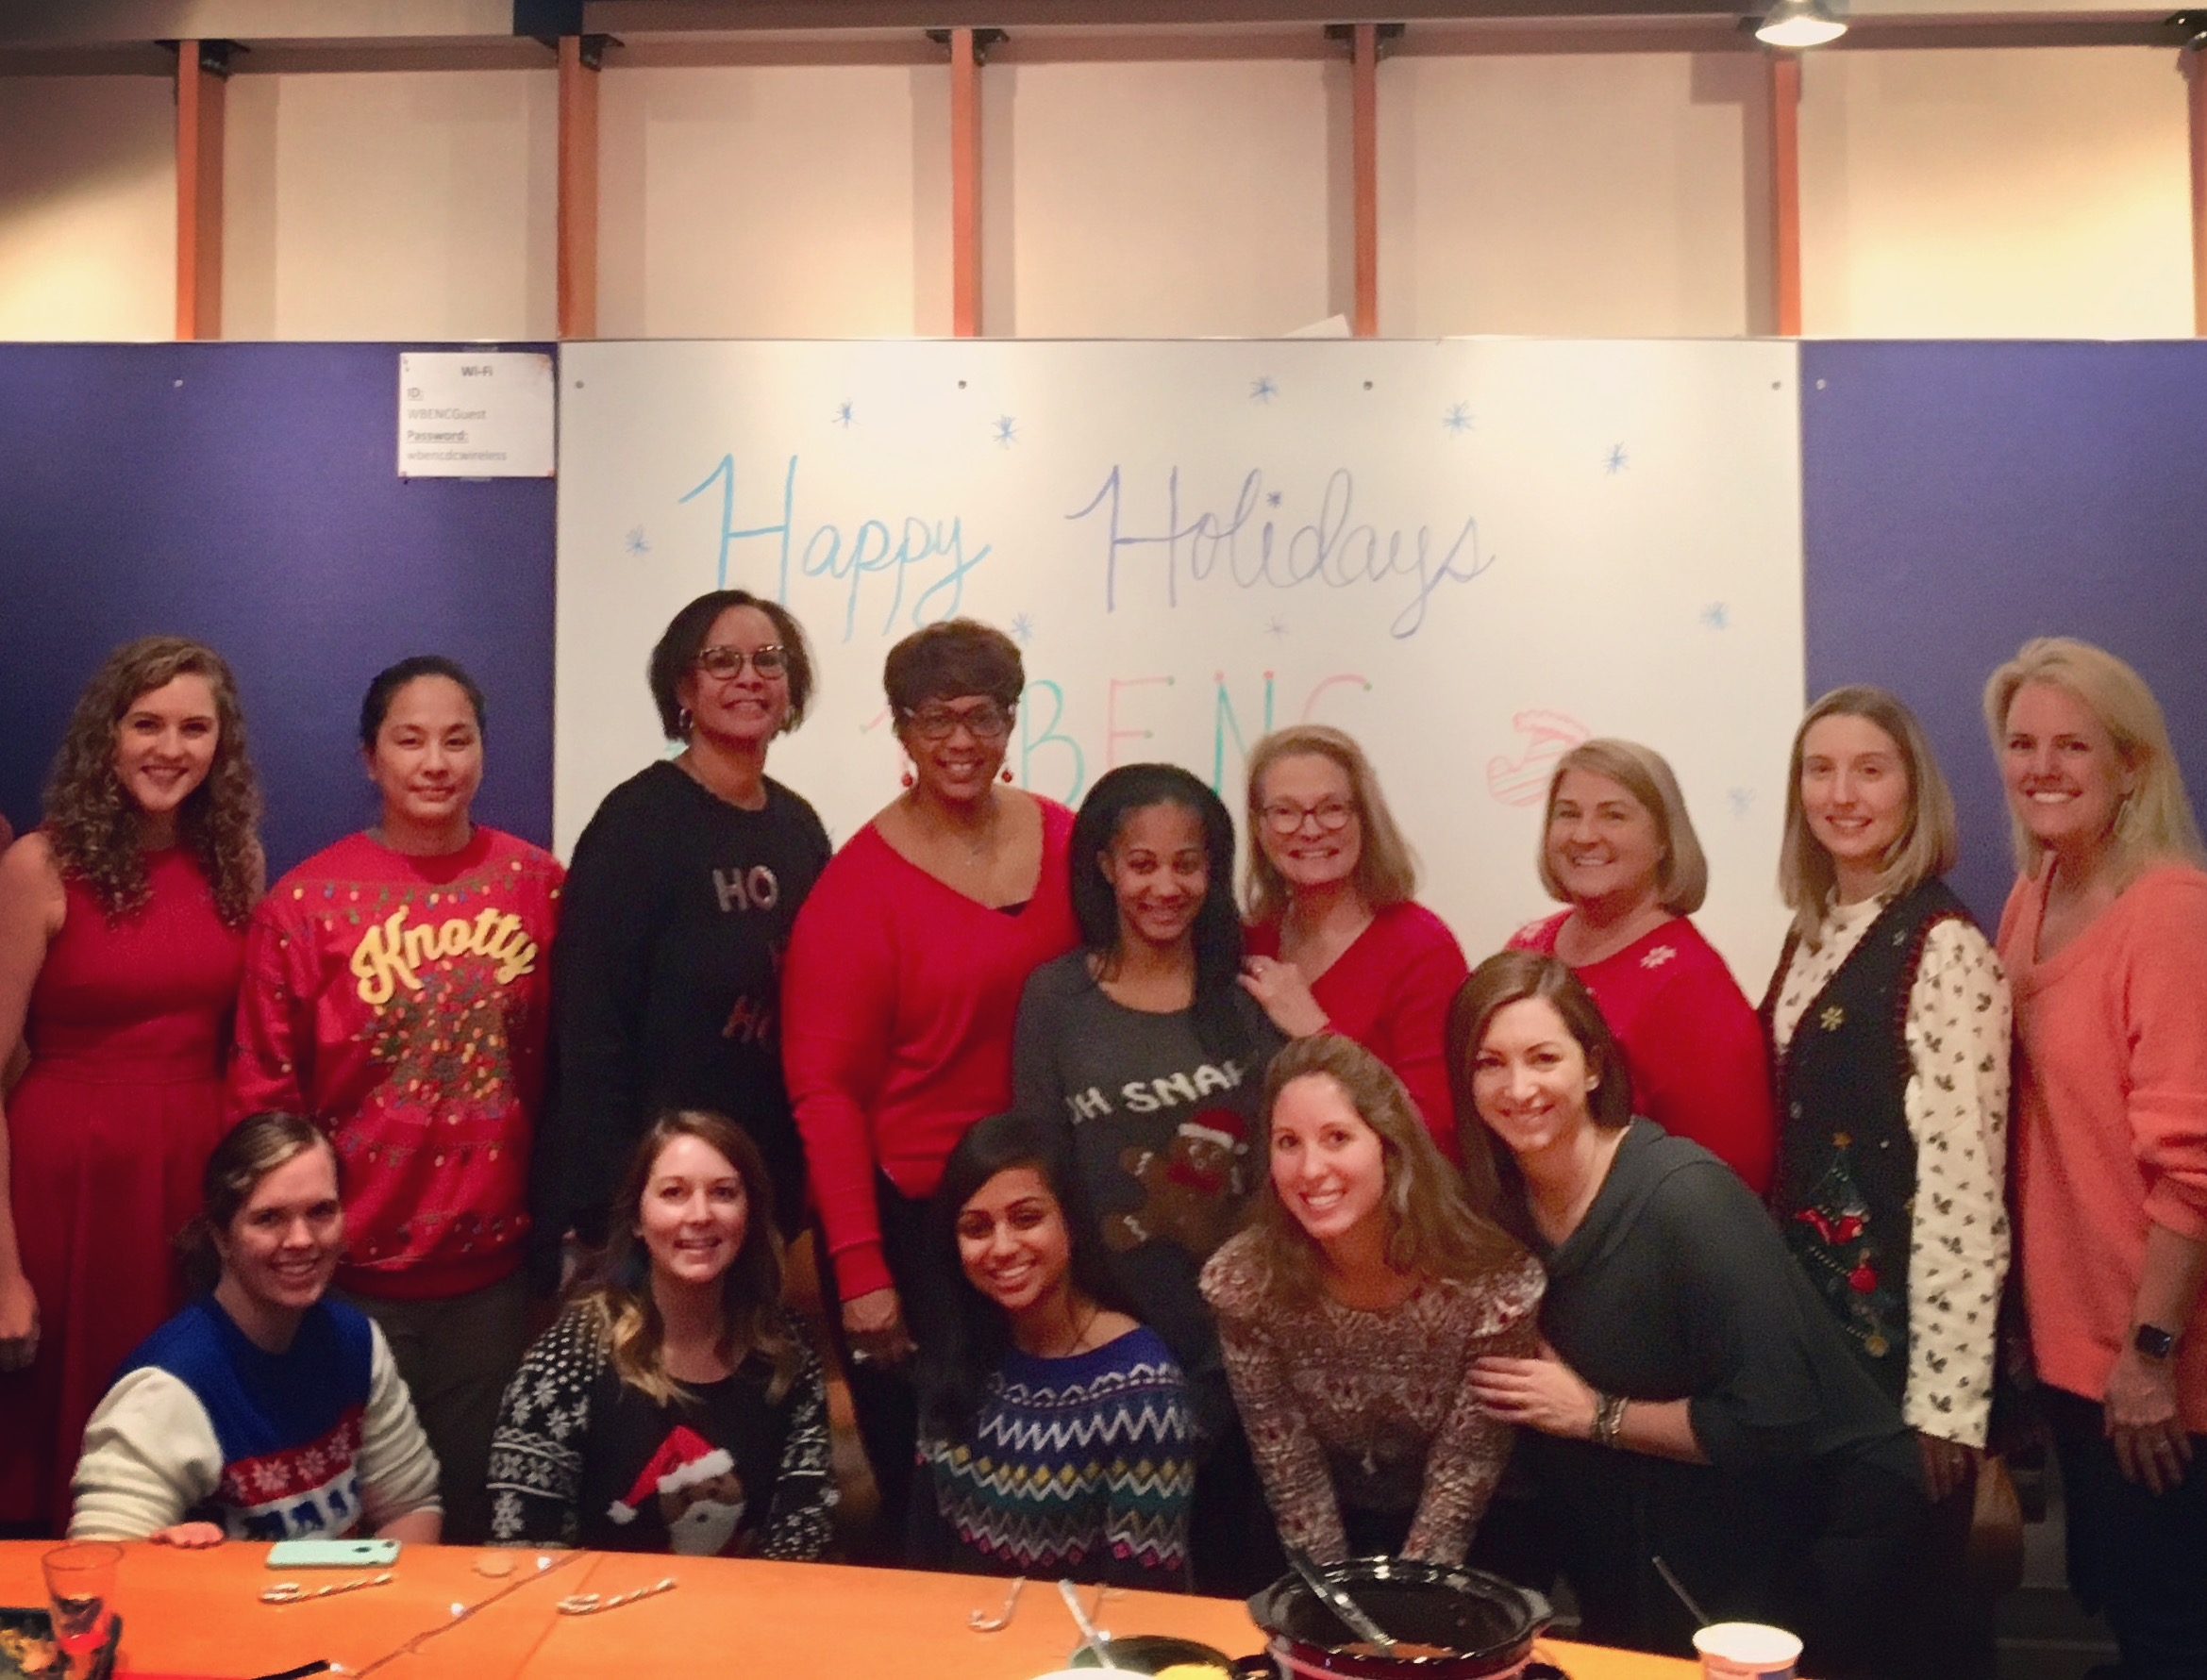 Happy holidays from our team to yours!